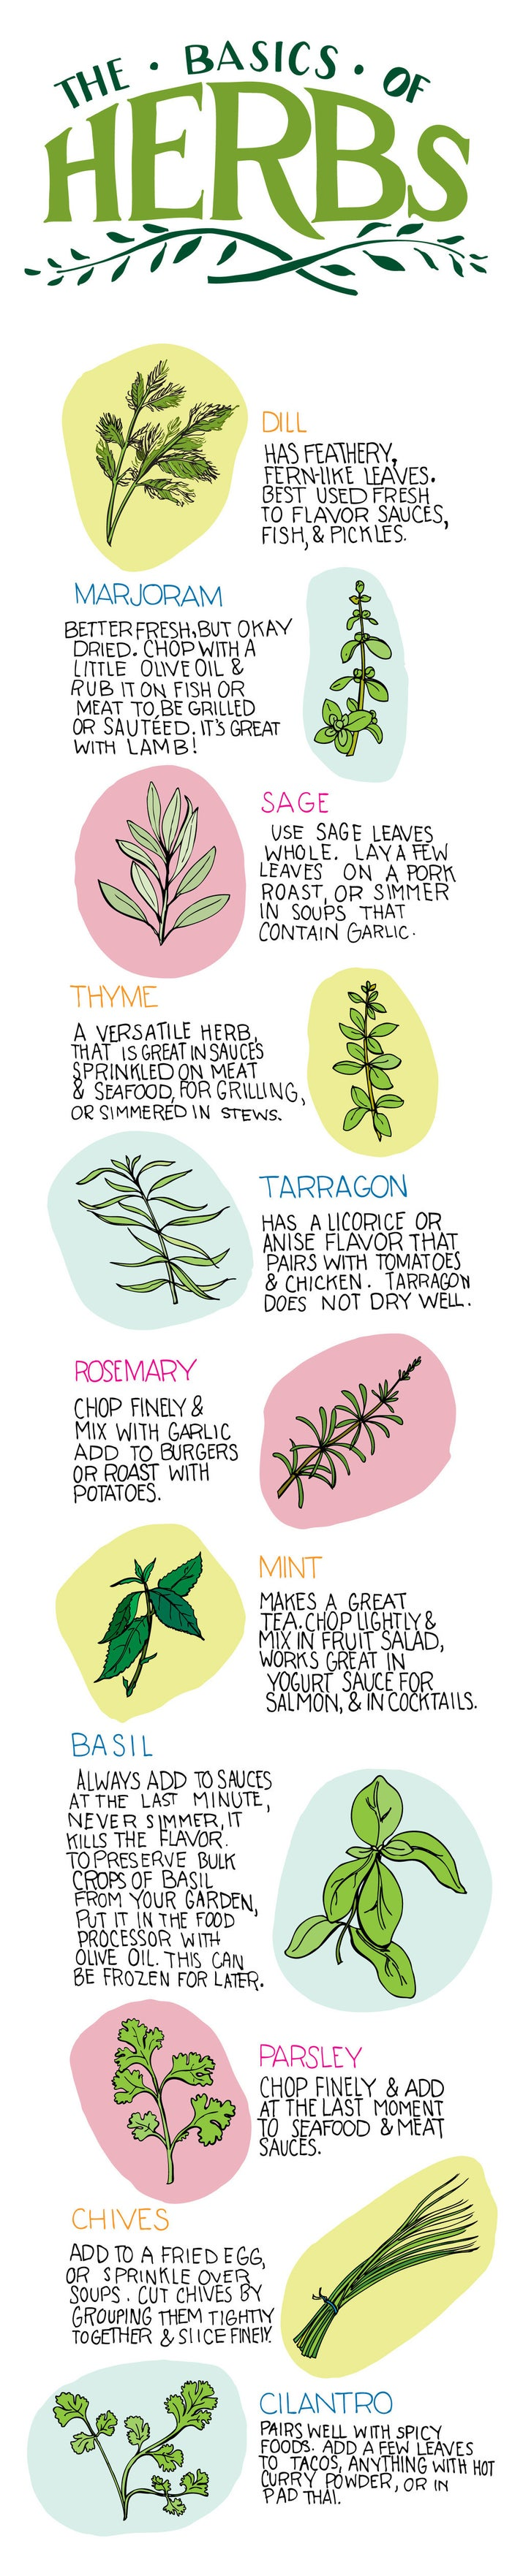 Read through this herb primer and then decide what you want to grow.